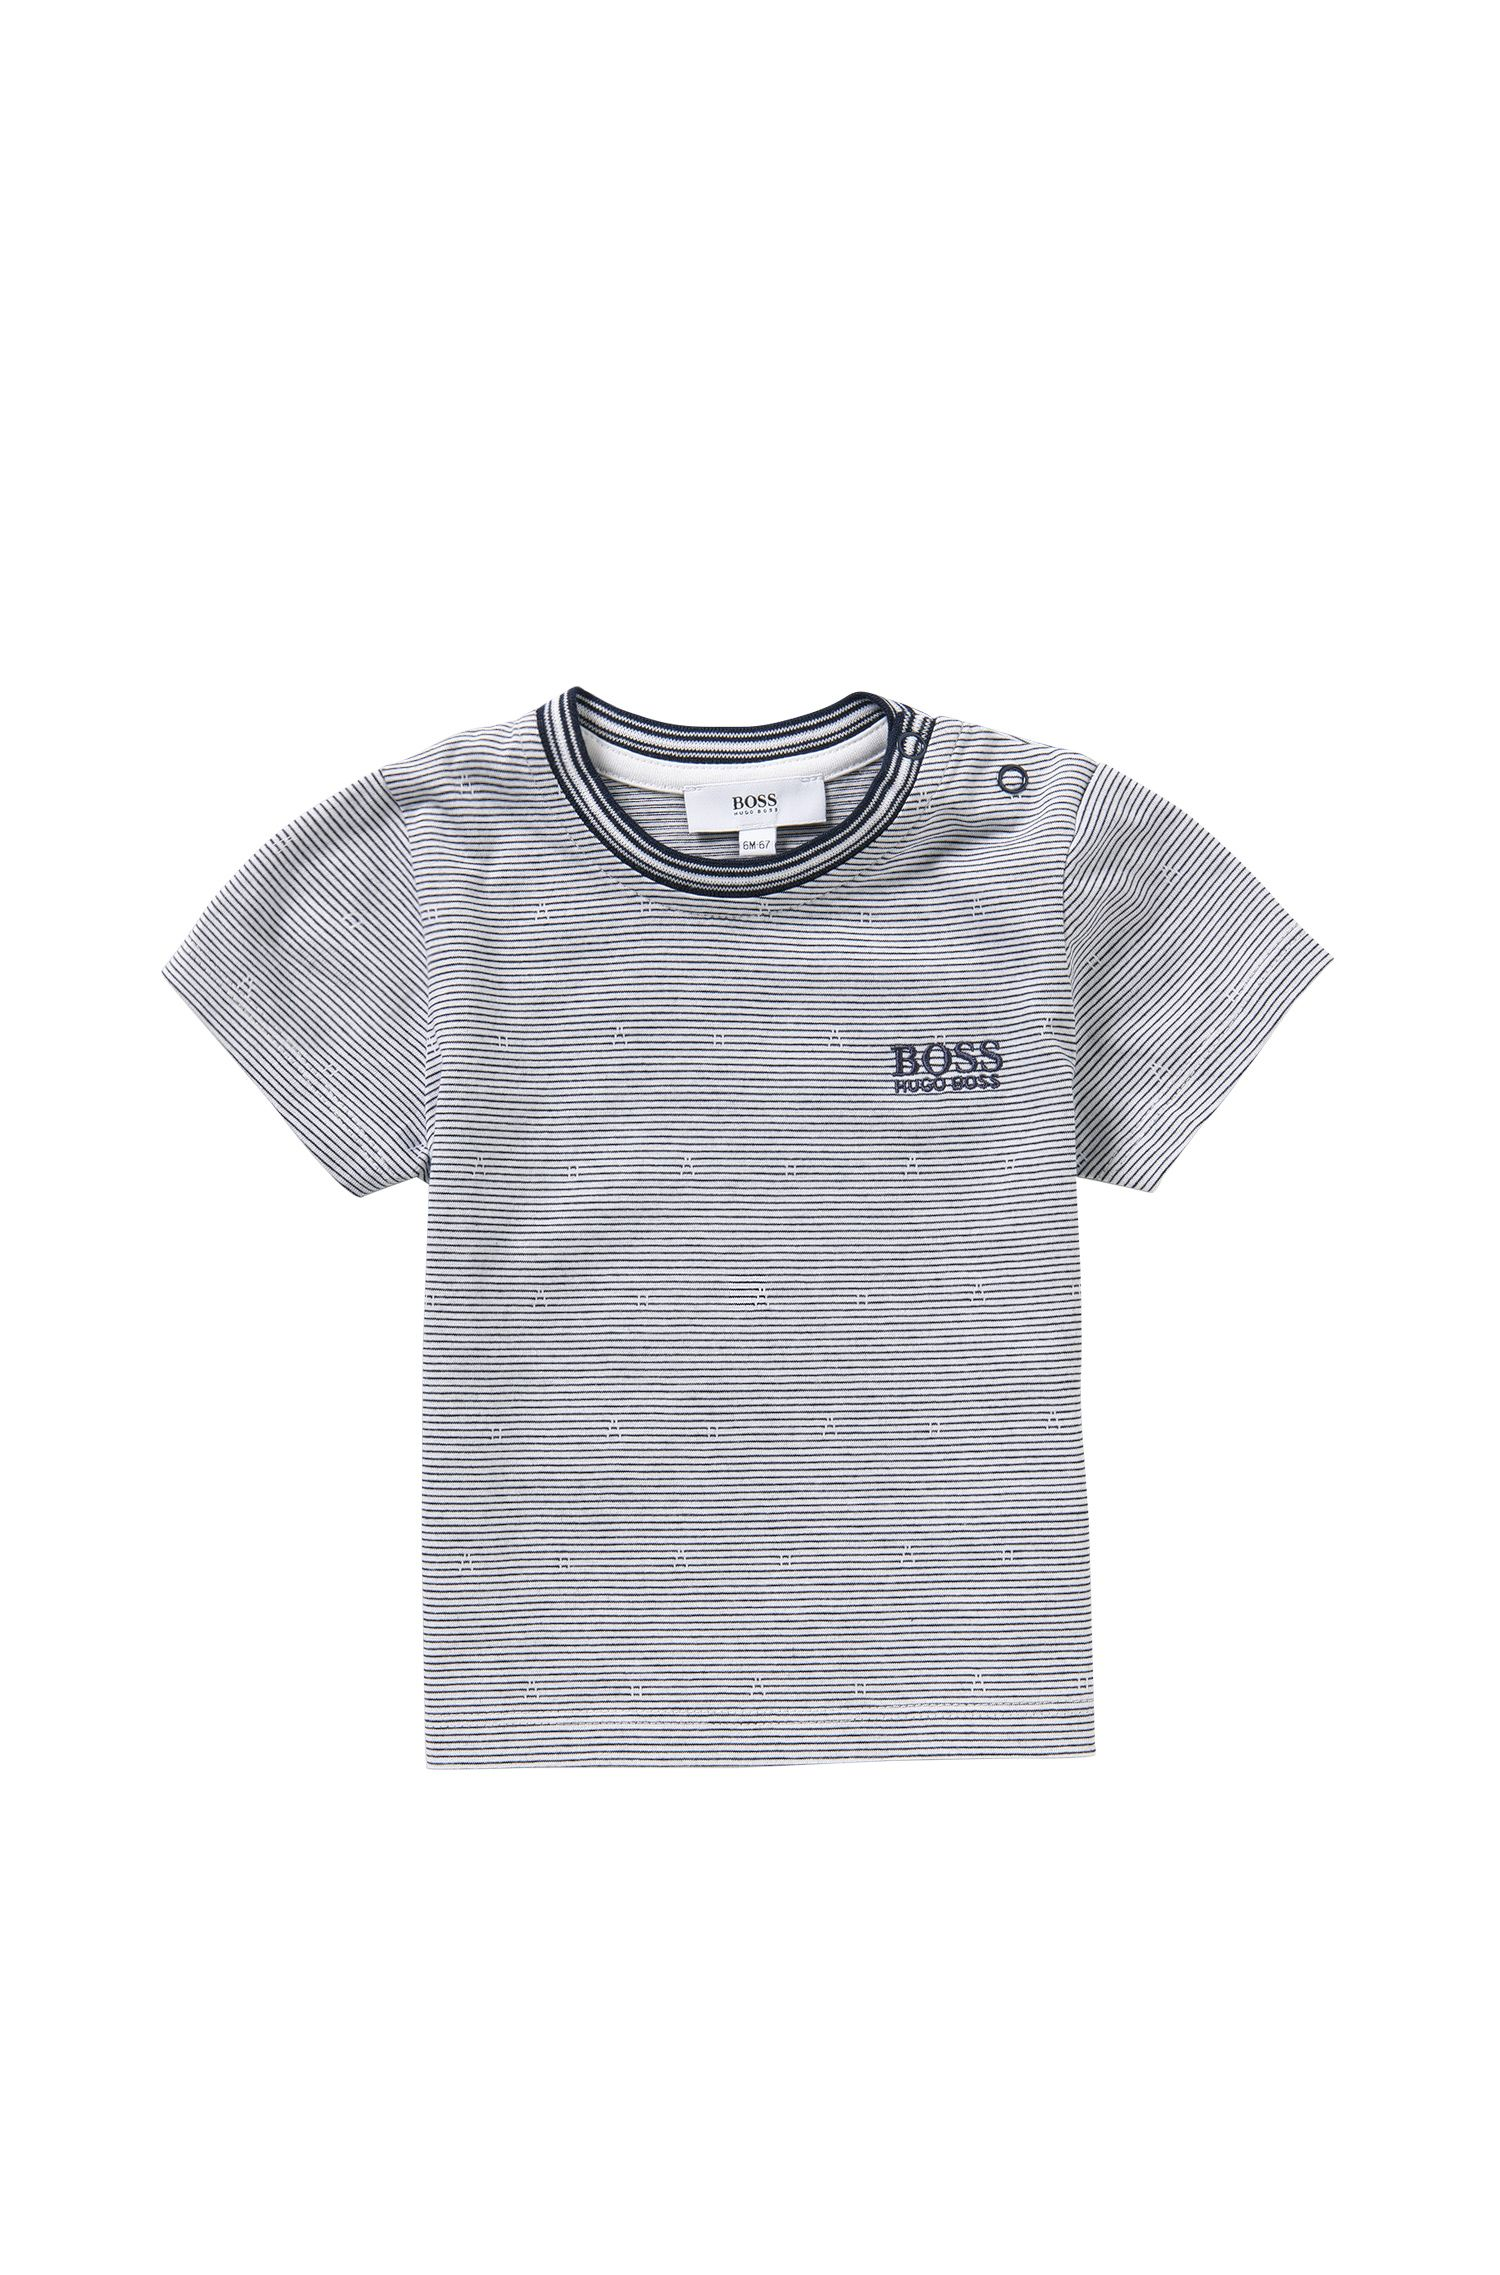 Striped newborns' t-shirt in cotton: 'J05455'